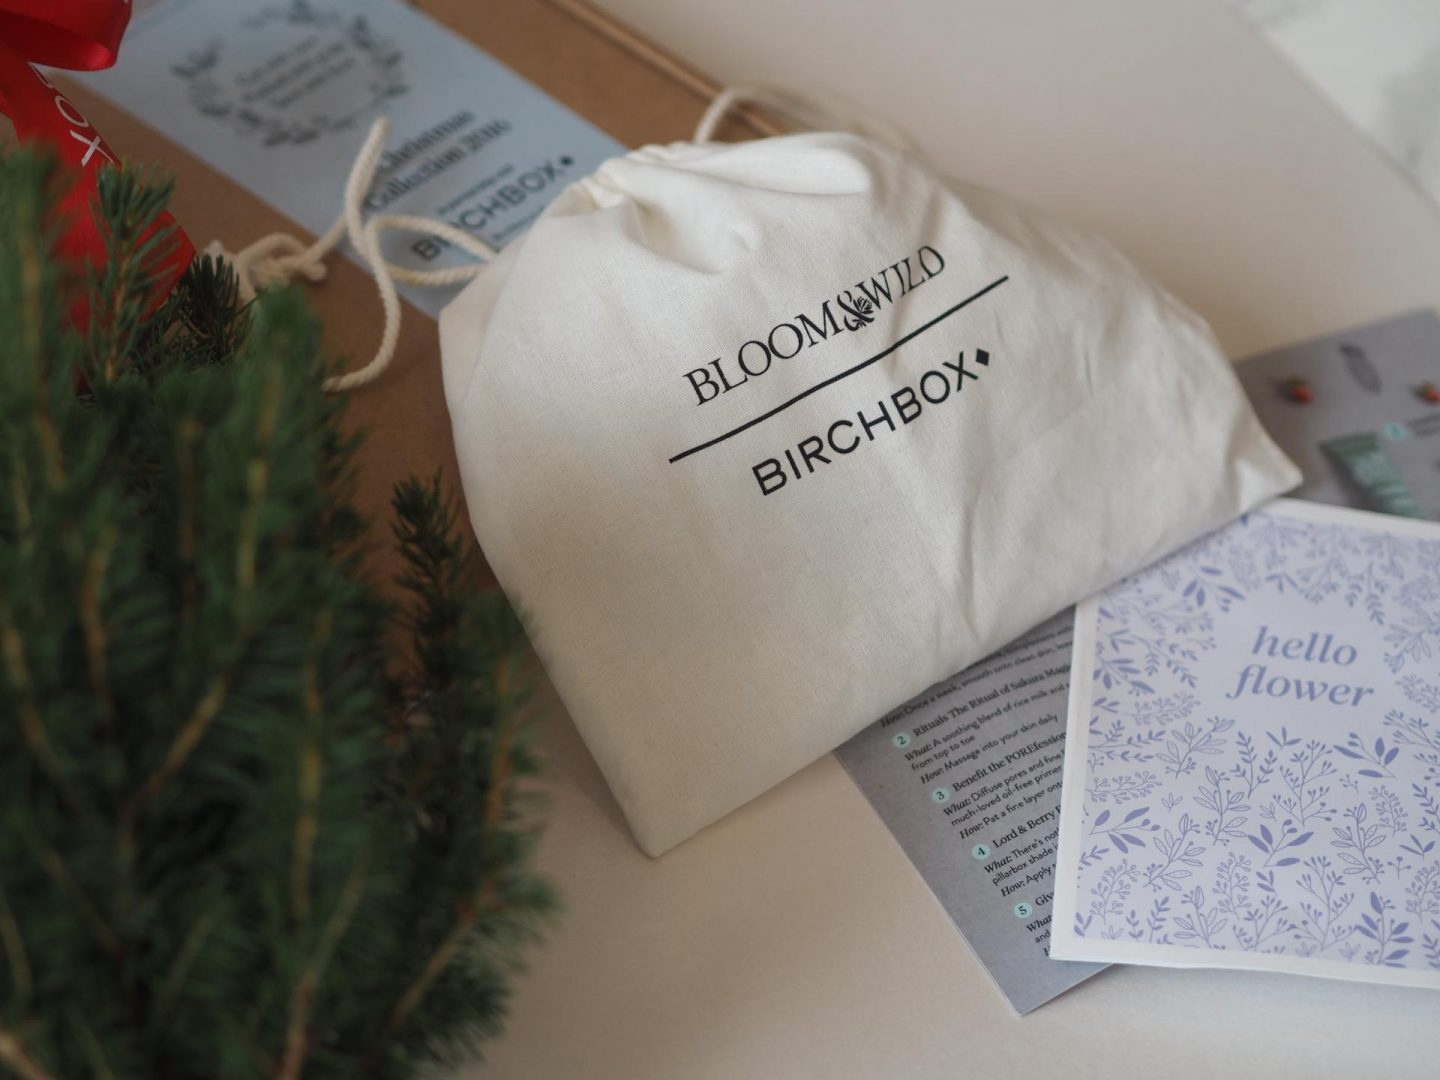 Mini Birch Treat with Bloom & Wild and Birchbox for December Collaboration